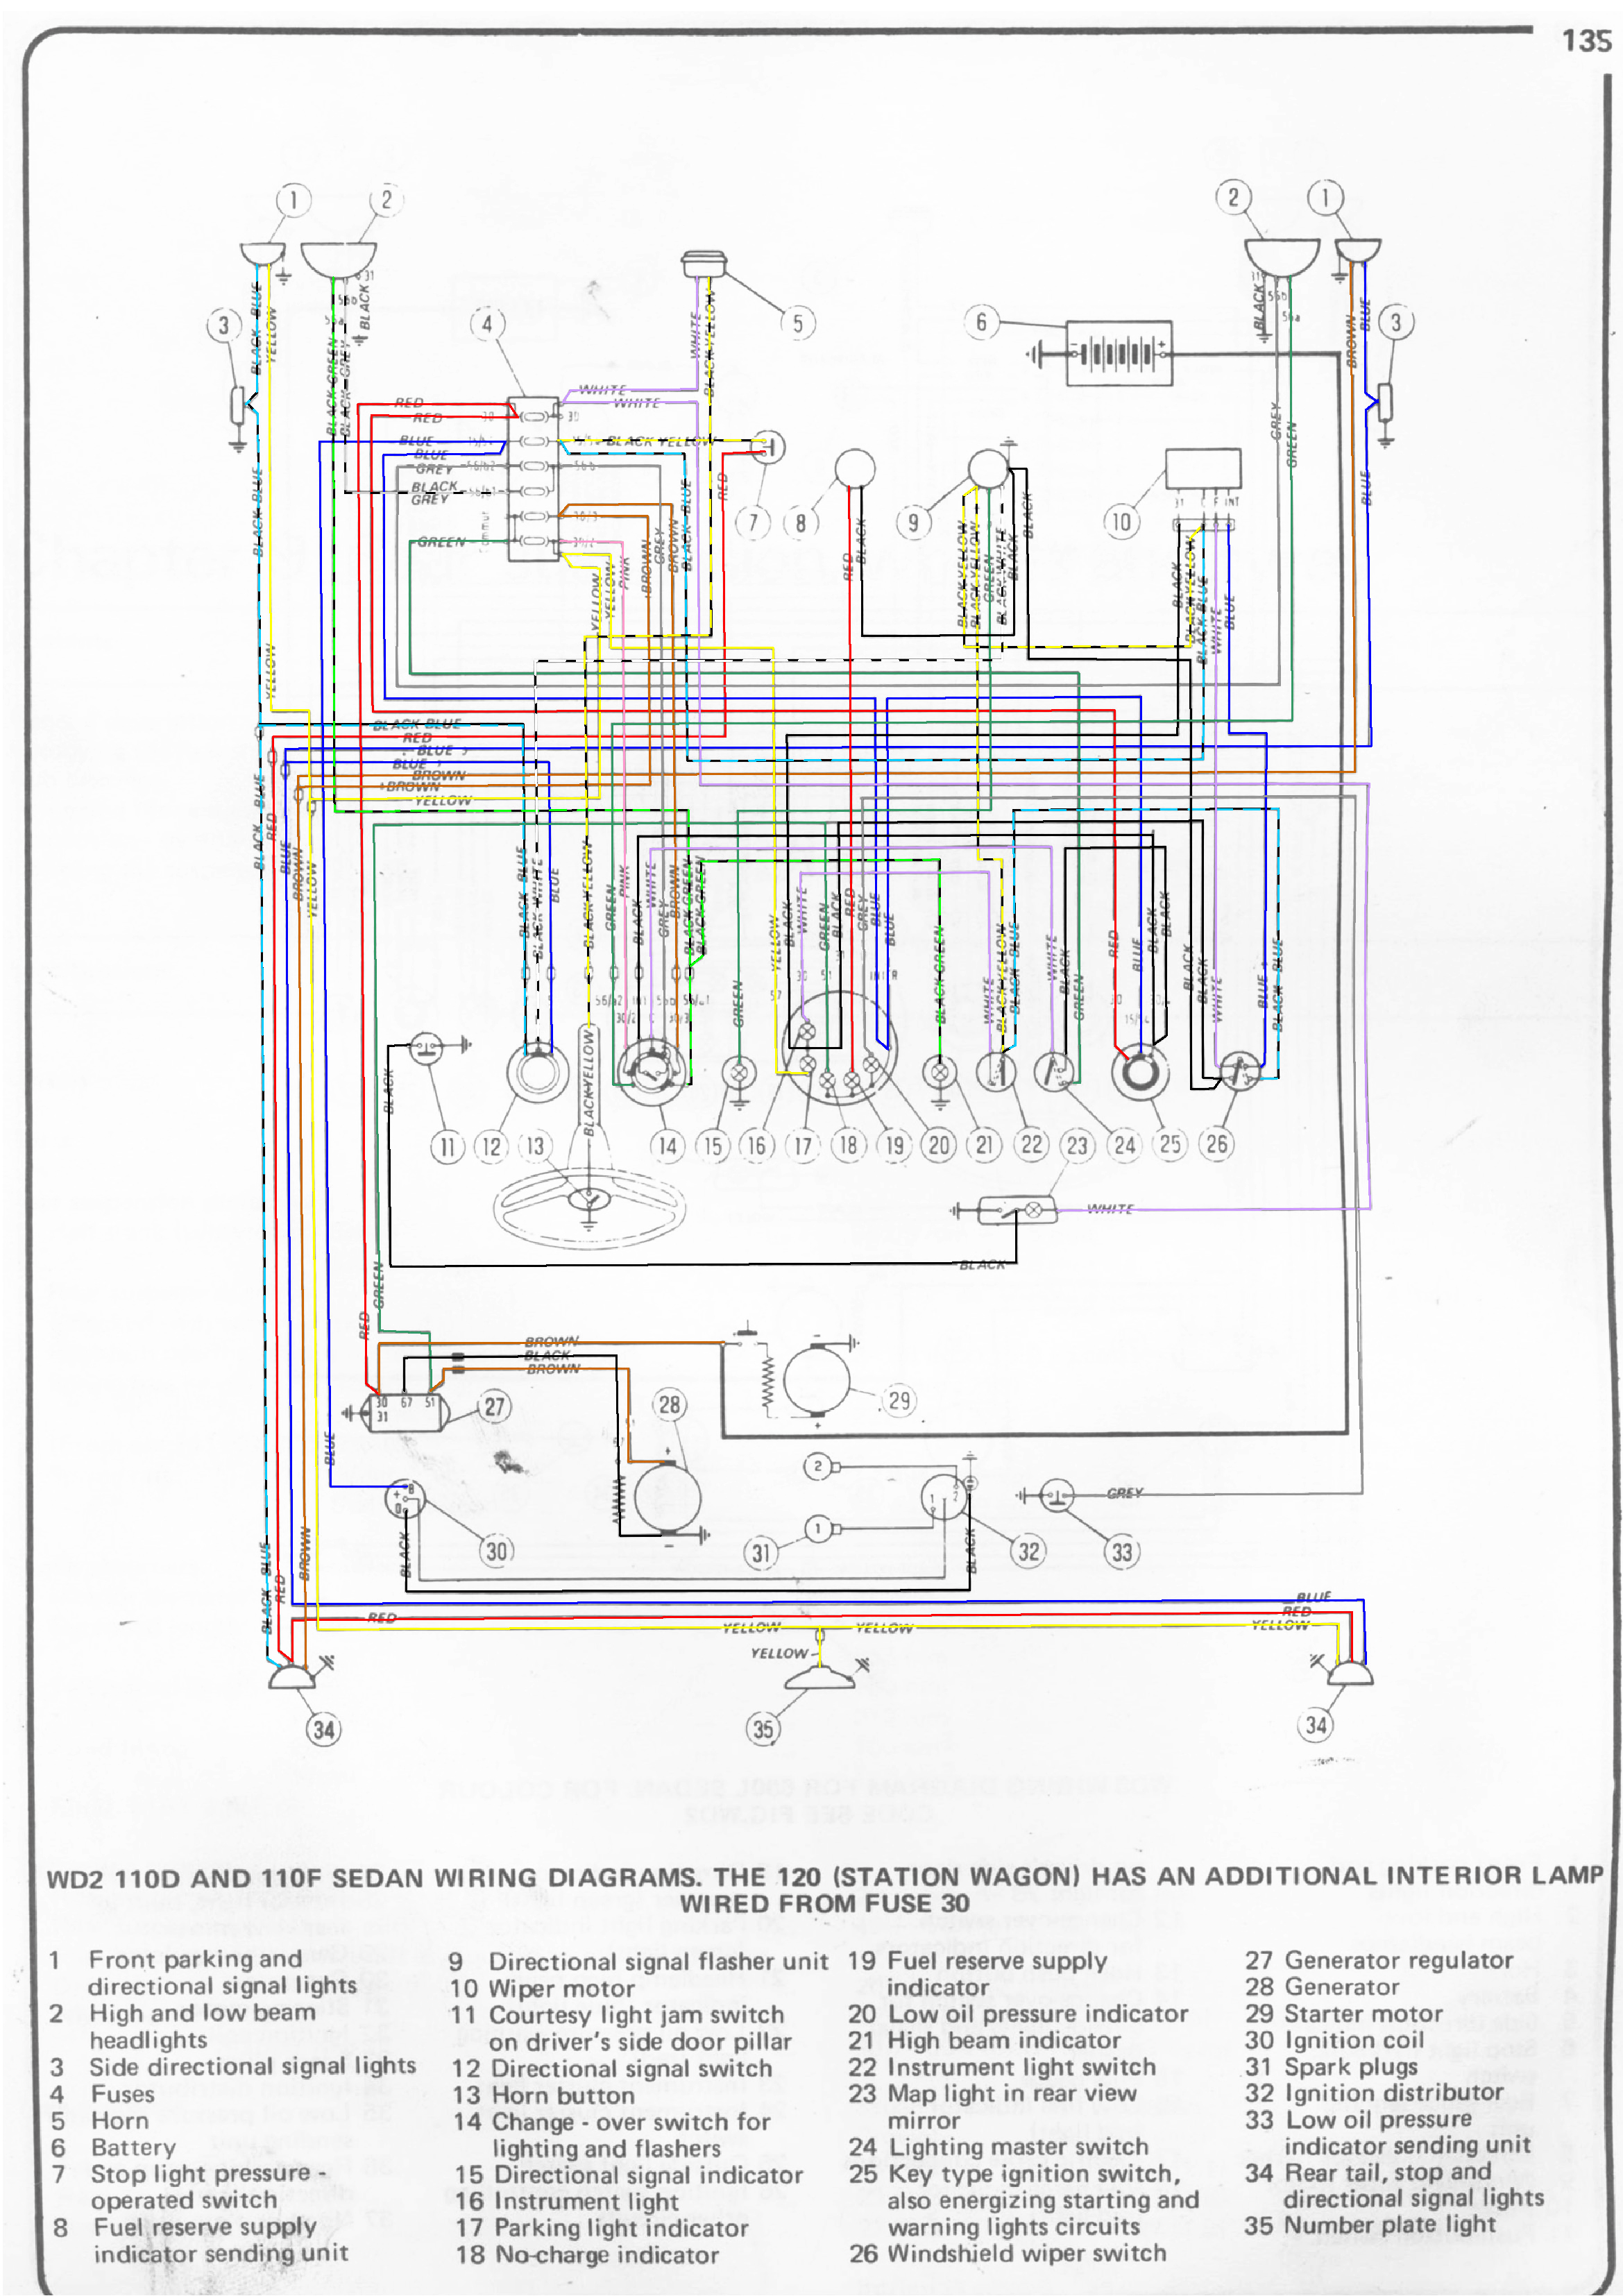 medium resolution of fiat wiring diagrams schematic wiring diagramsfiat 500 wiring diagram wiring diagram third level minute mount 2